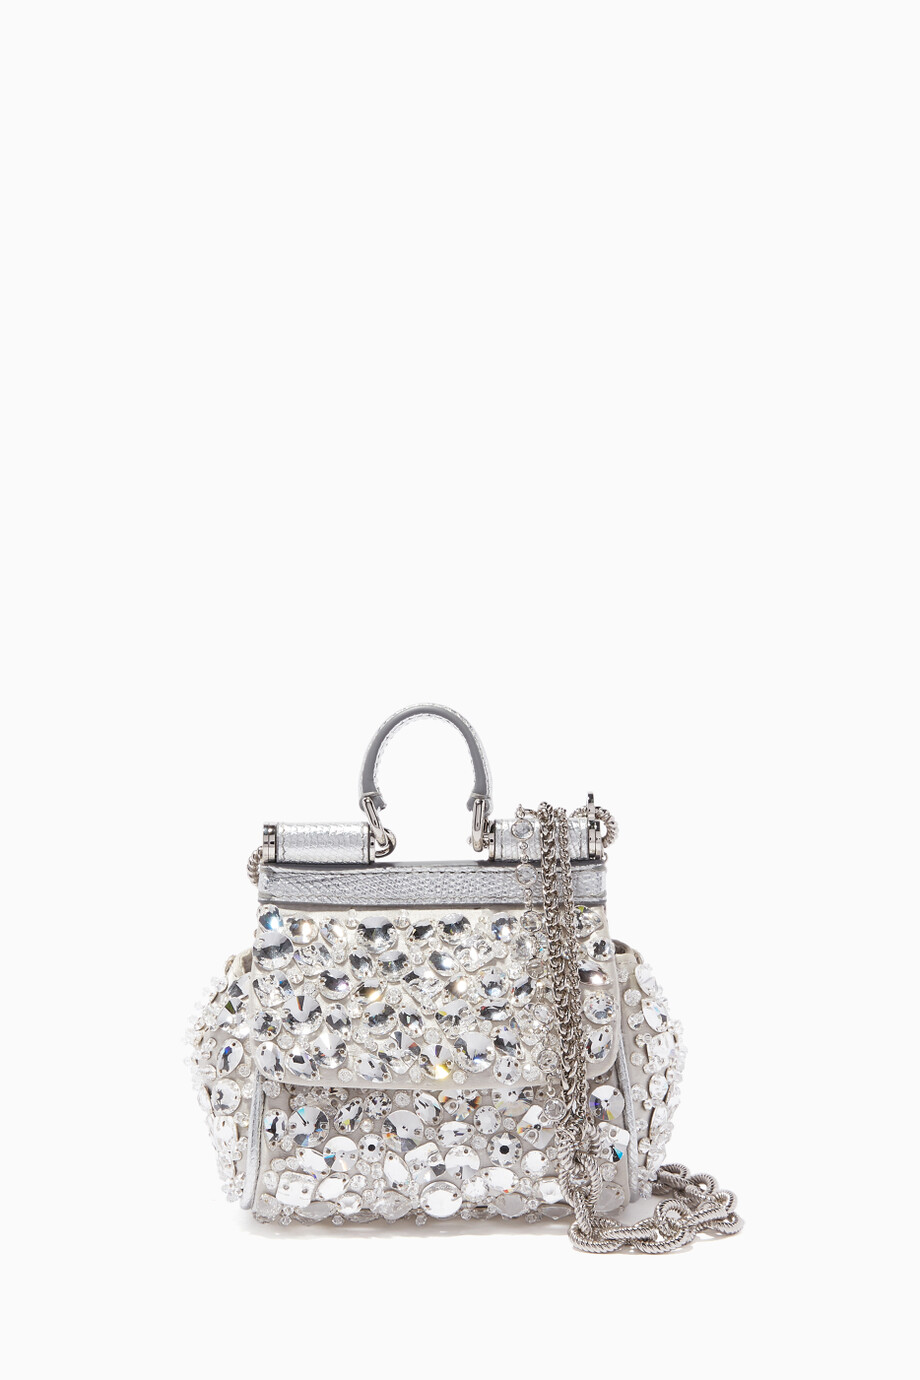 d006c0c9c94 Shop Dolce & Gabbana Silver Silver Micro Sicily Crystal-Embellished ...